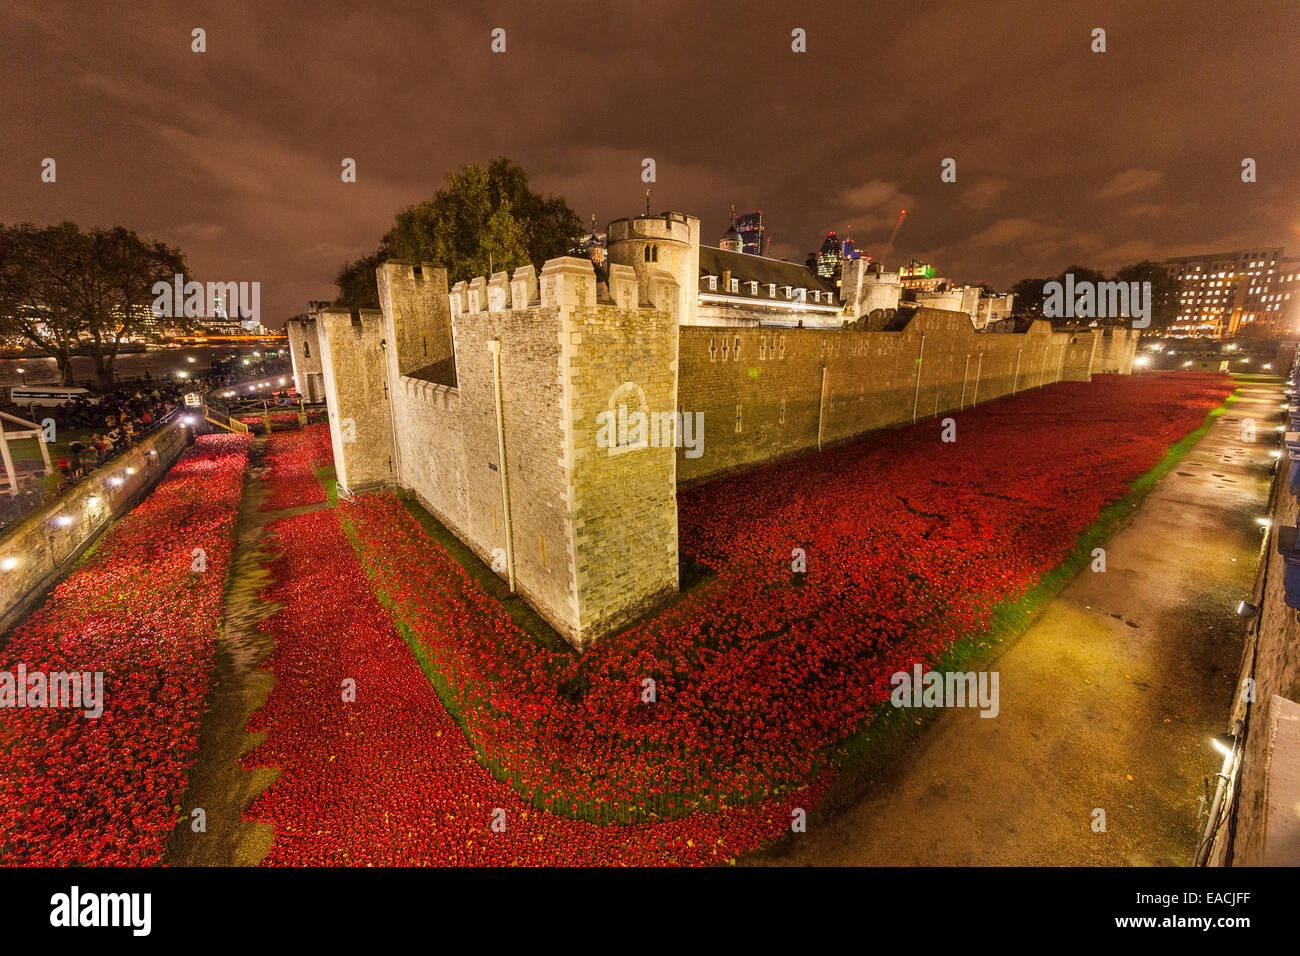 London, England, UK. 11 November 2014. The Tower of London in the night of Armistice Day – the final day to see - Stock Image